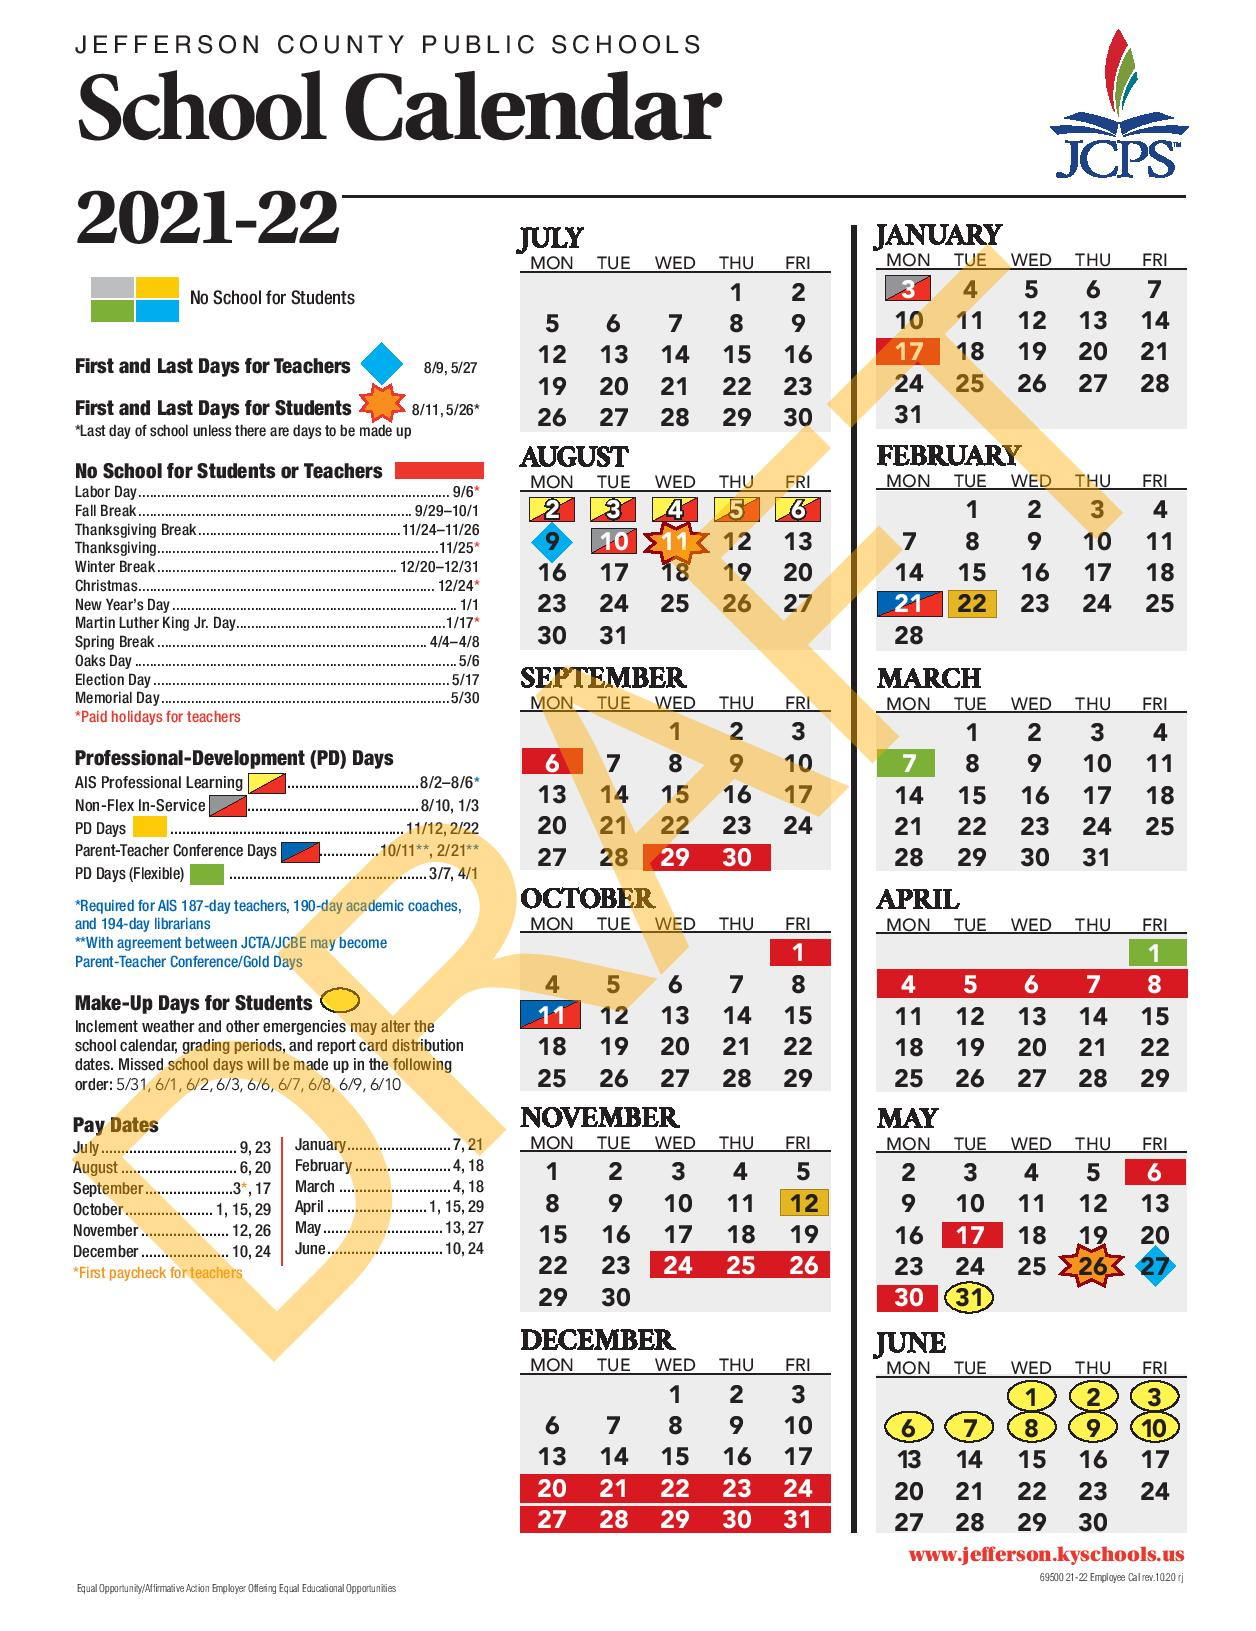 Uofl Academic Calendar 2022.Jcps On Twitter The Board Approved The 2021 2022 School Calendar Highlights Include A Mid August Start Date A Fall Break In Late September Early October A Winter Break A Spring Break